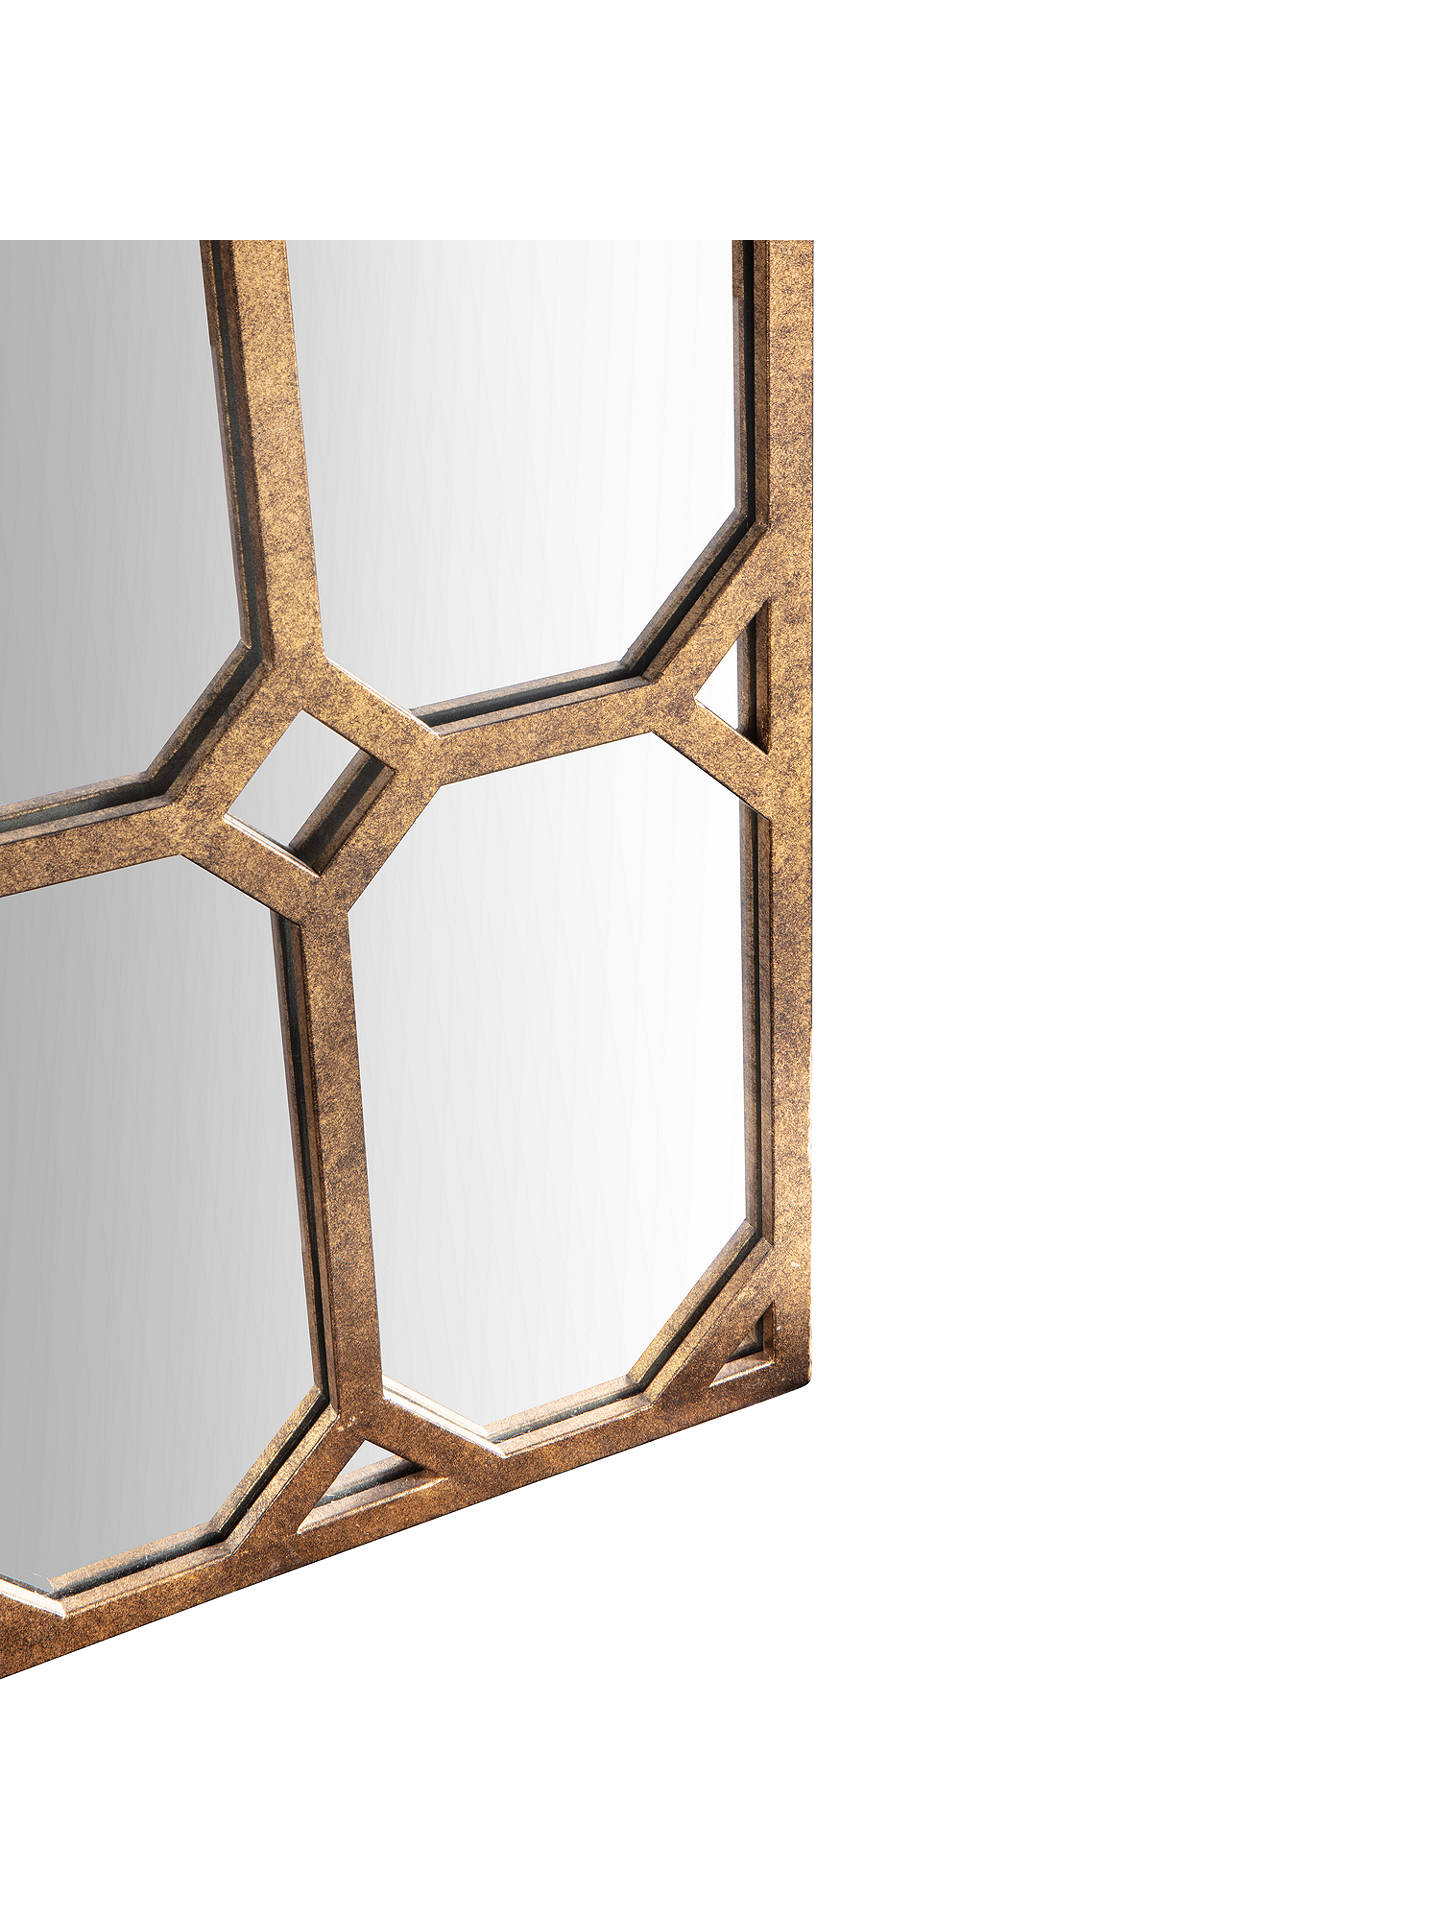 BuyJohn Lewis & Partners Eugenie Arched Mirror, 149 x 79cm, Antique Bronze Online at johnlewis.com